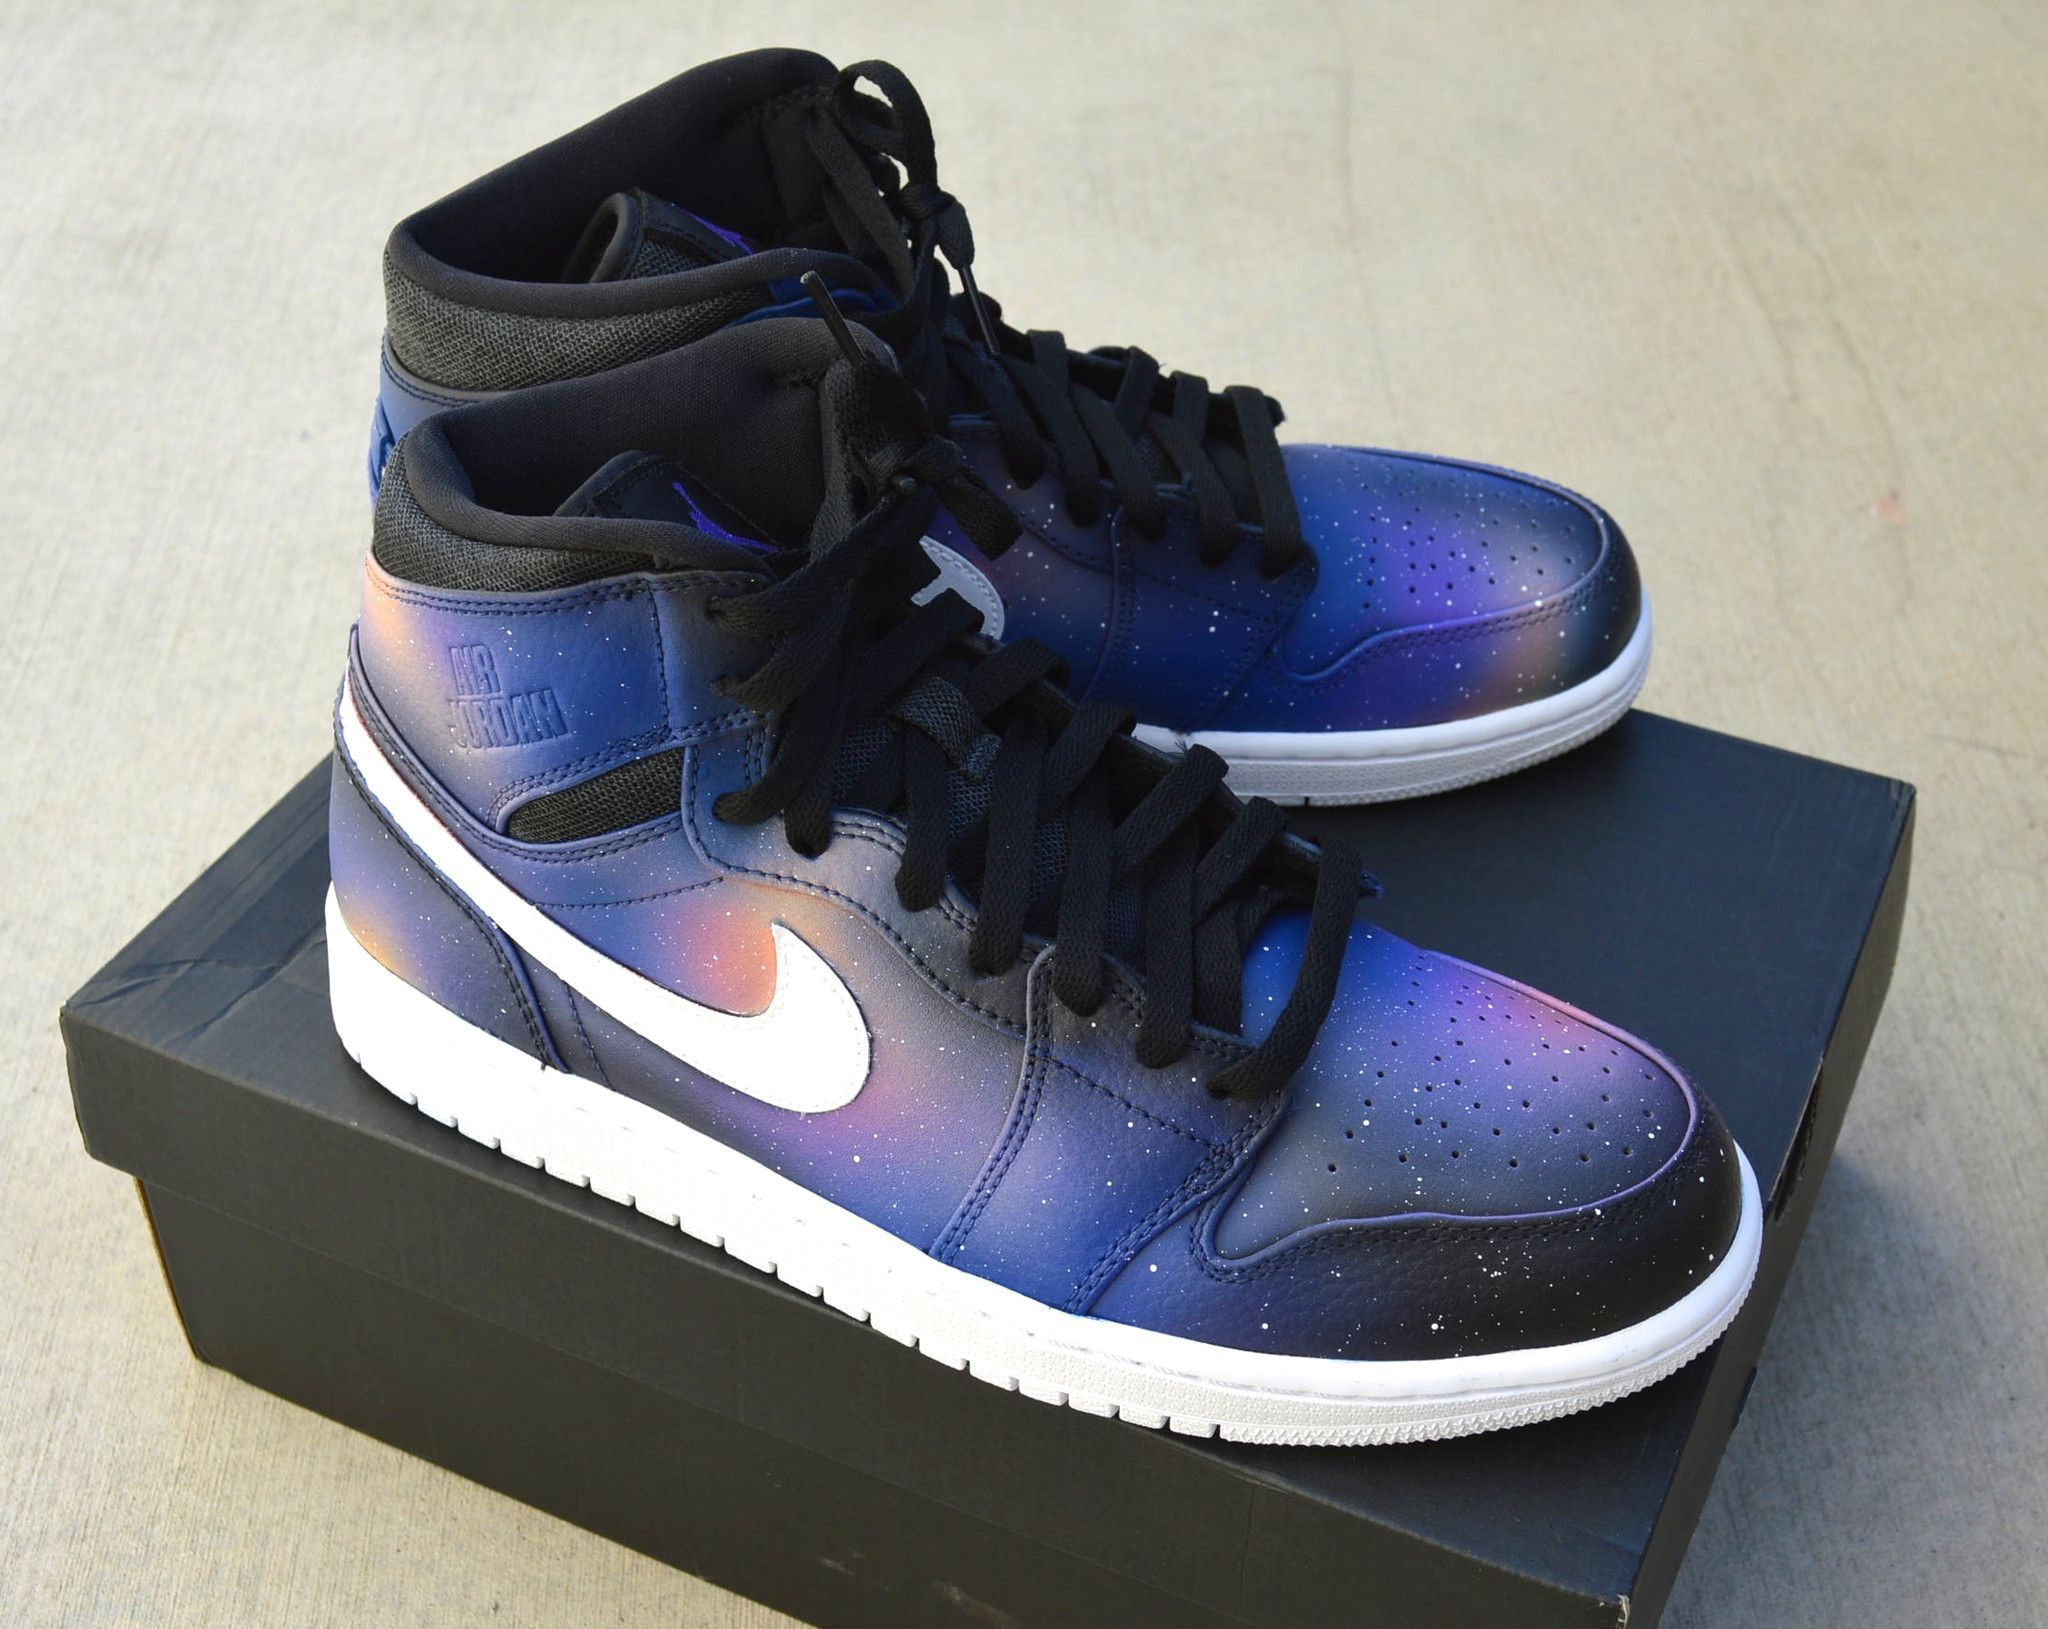 newest collection d3c59 41413 These custom Hand Painted Jordan 1 Retro Sneakers feature a my signature  galaxy pattern all around the shoes. No two pairs are the same and your  pair will ...